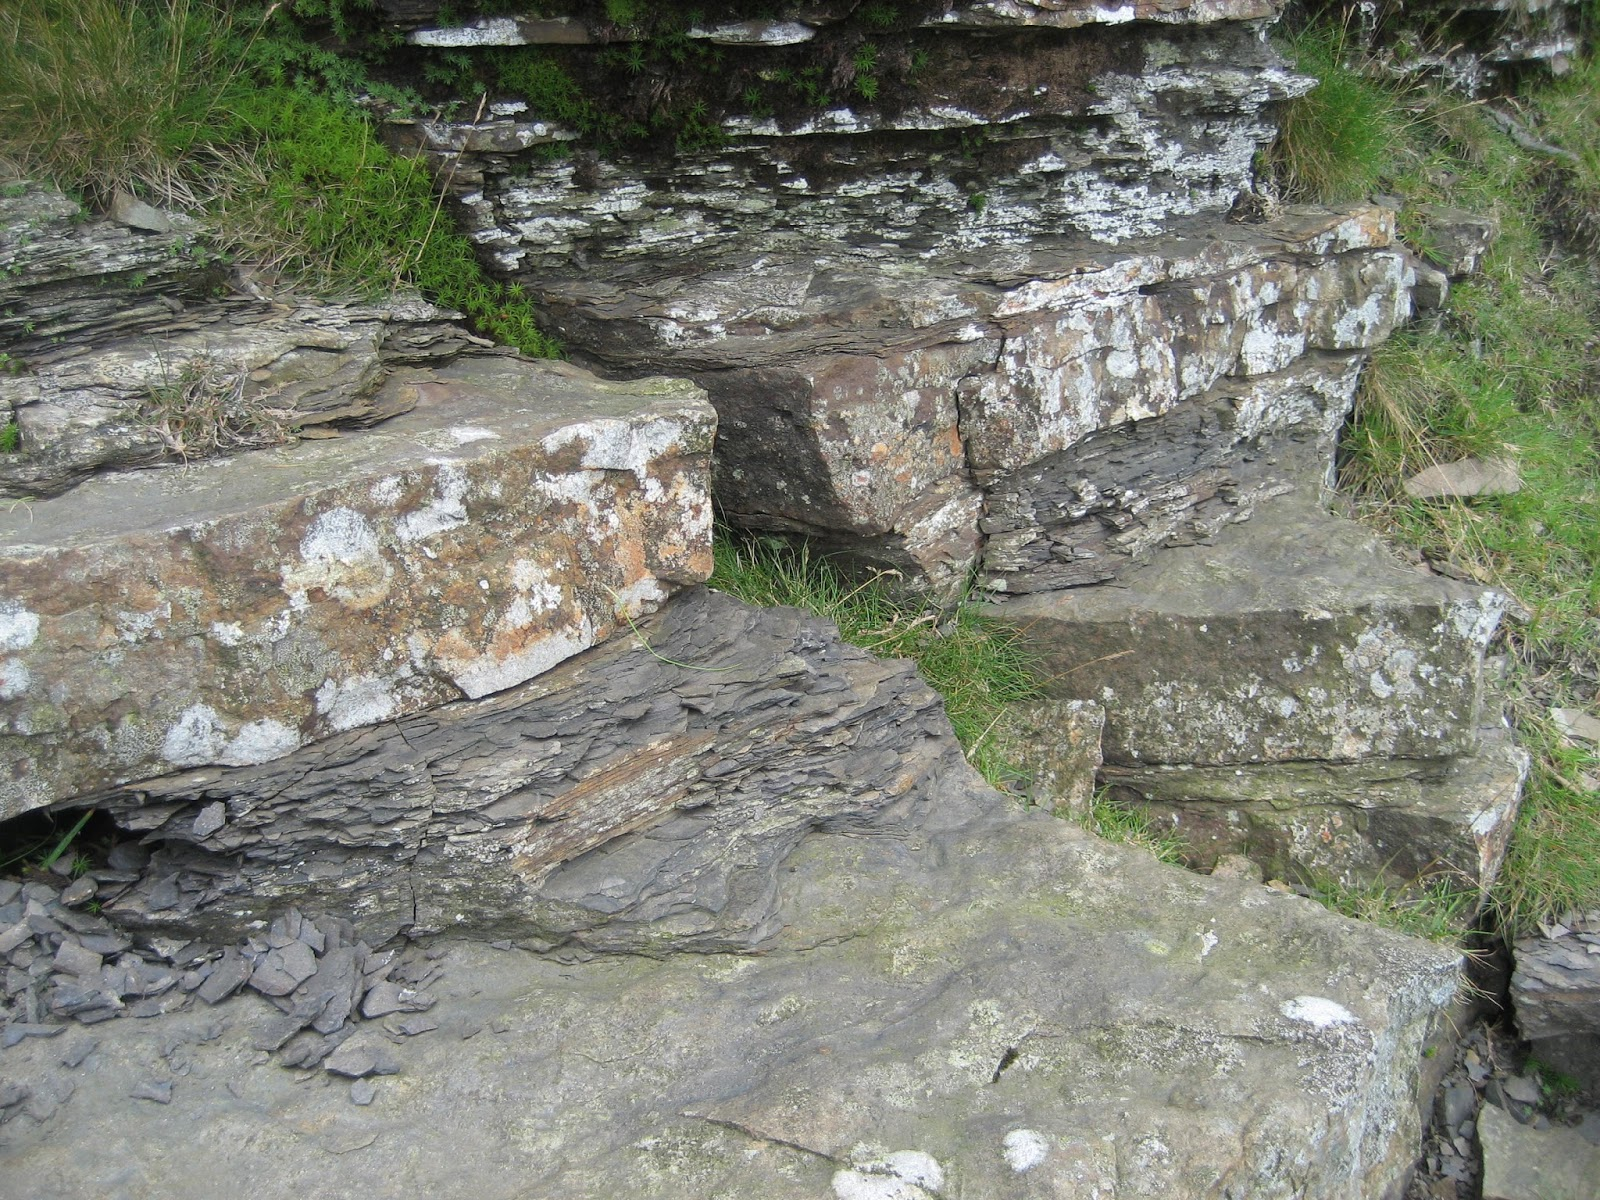 Sandstones and shales in the Yoredale Series formed by fluctuating sea levels. Stephen Oldfield